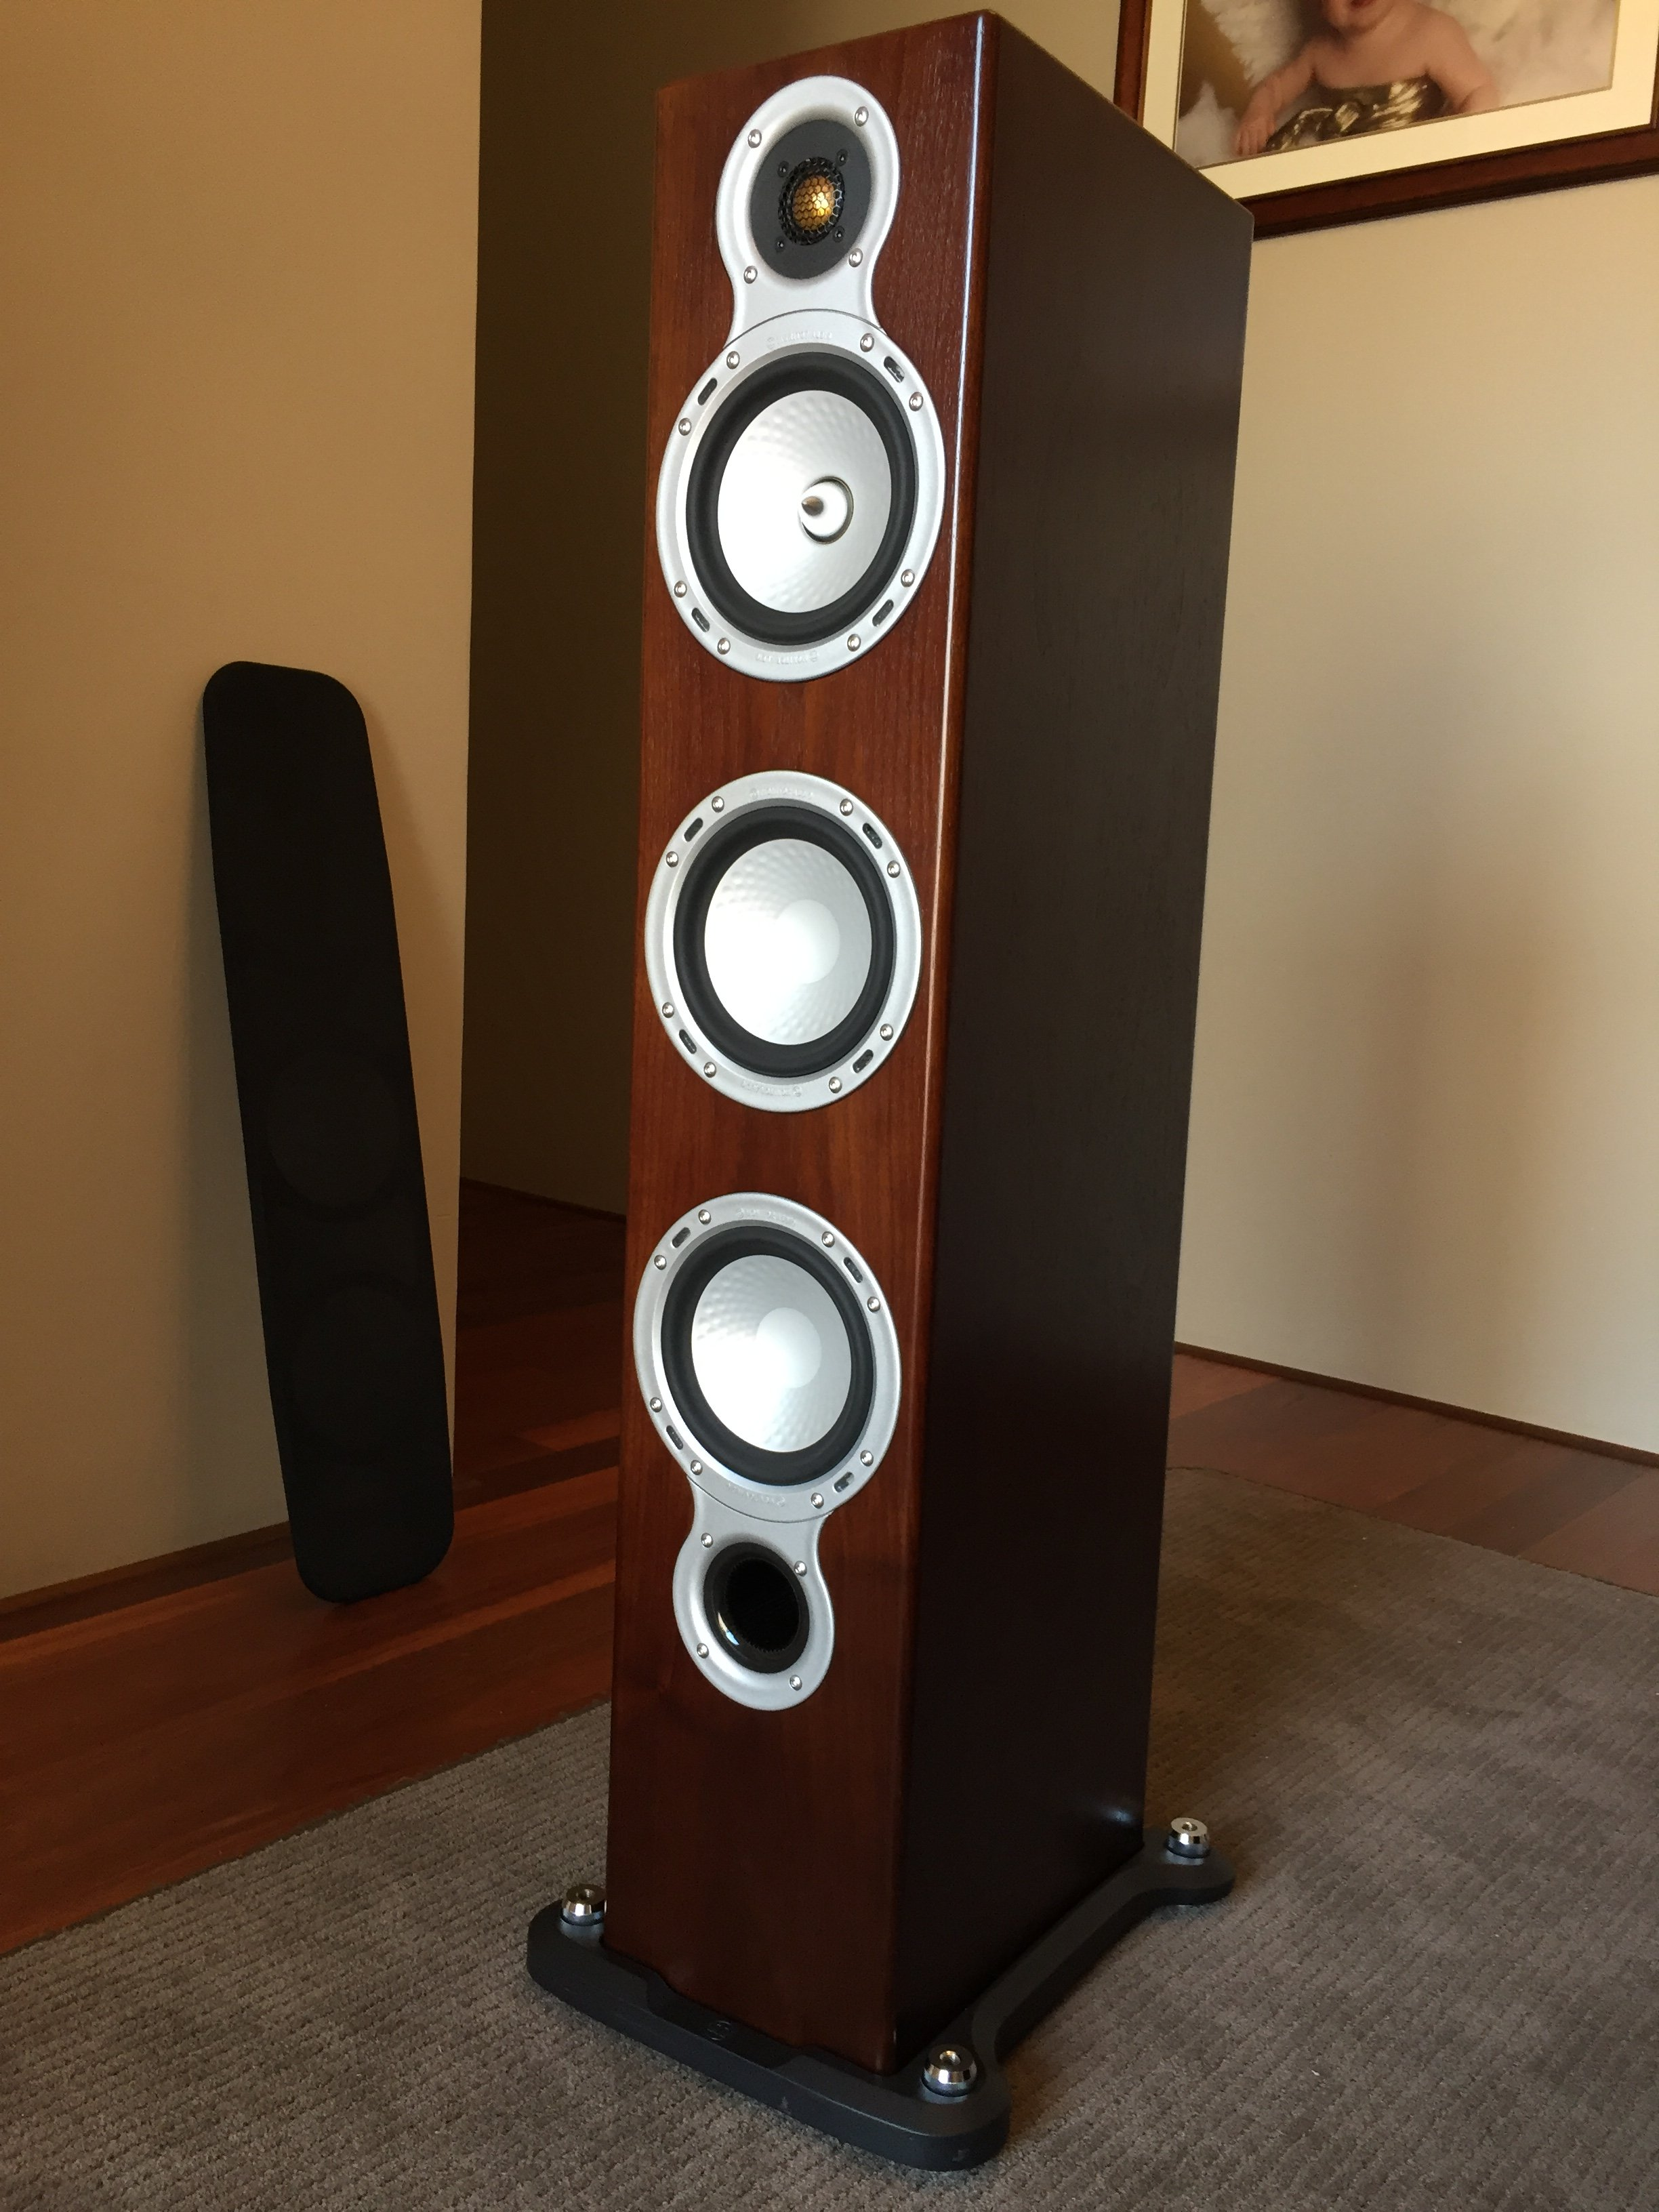 Withdrawn Or Relisted Fs Monitor Audio Gs60 Speakers Classifieds Bronze 6 Walnut Img 0721thumbb776aa3cfc64bffeb9dc5a41c21866ed